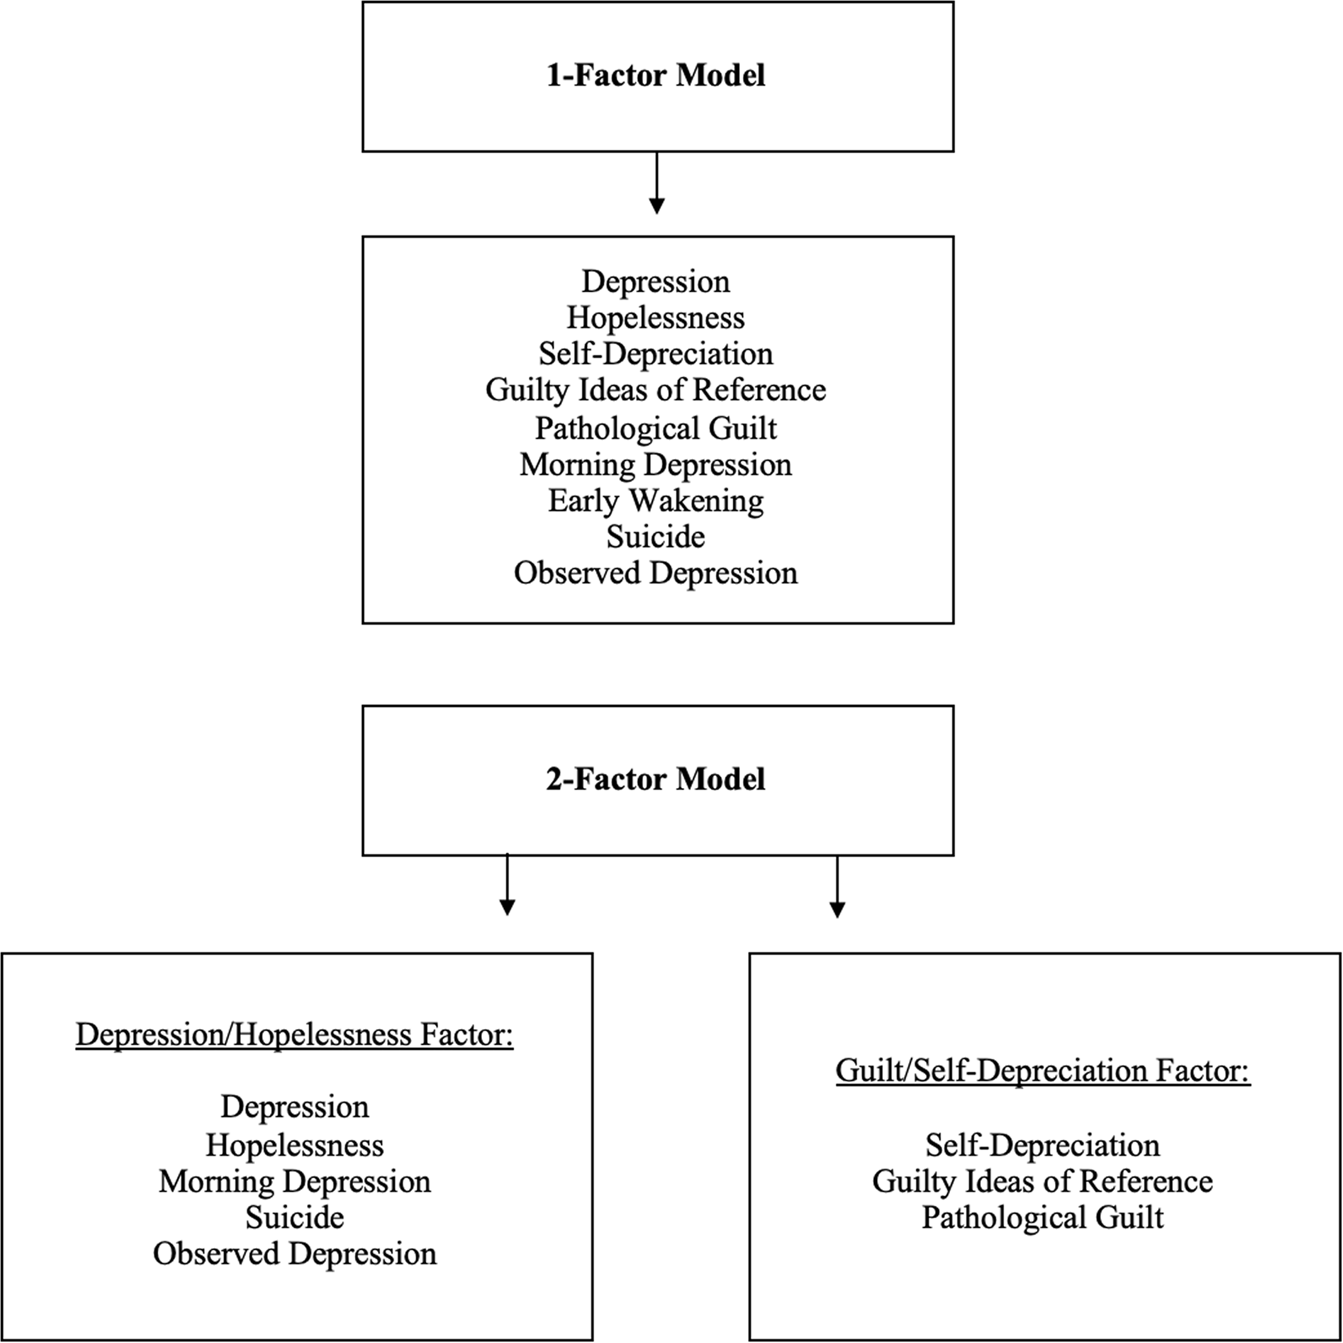 The latent structure of depressive symptoms across clinical